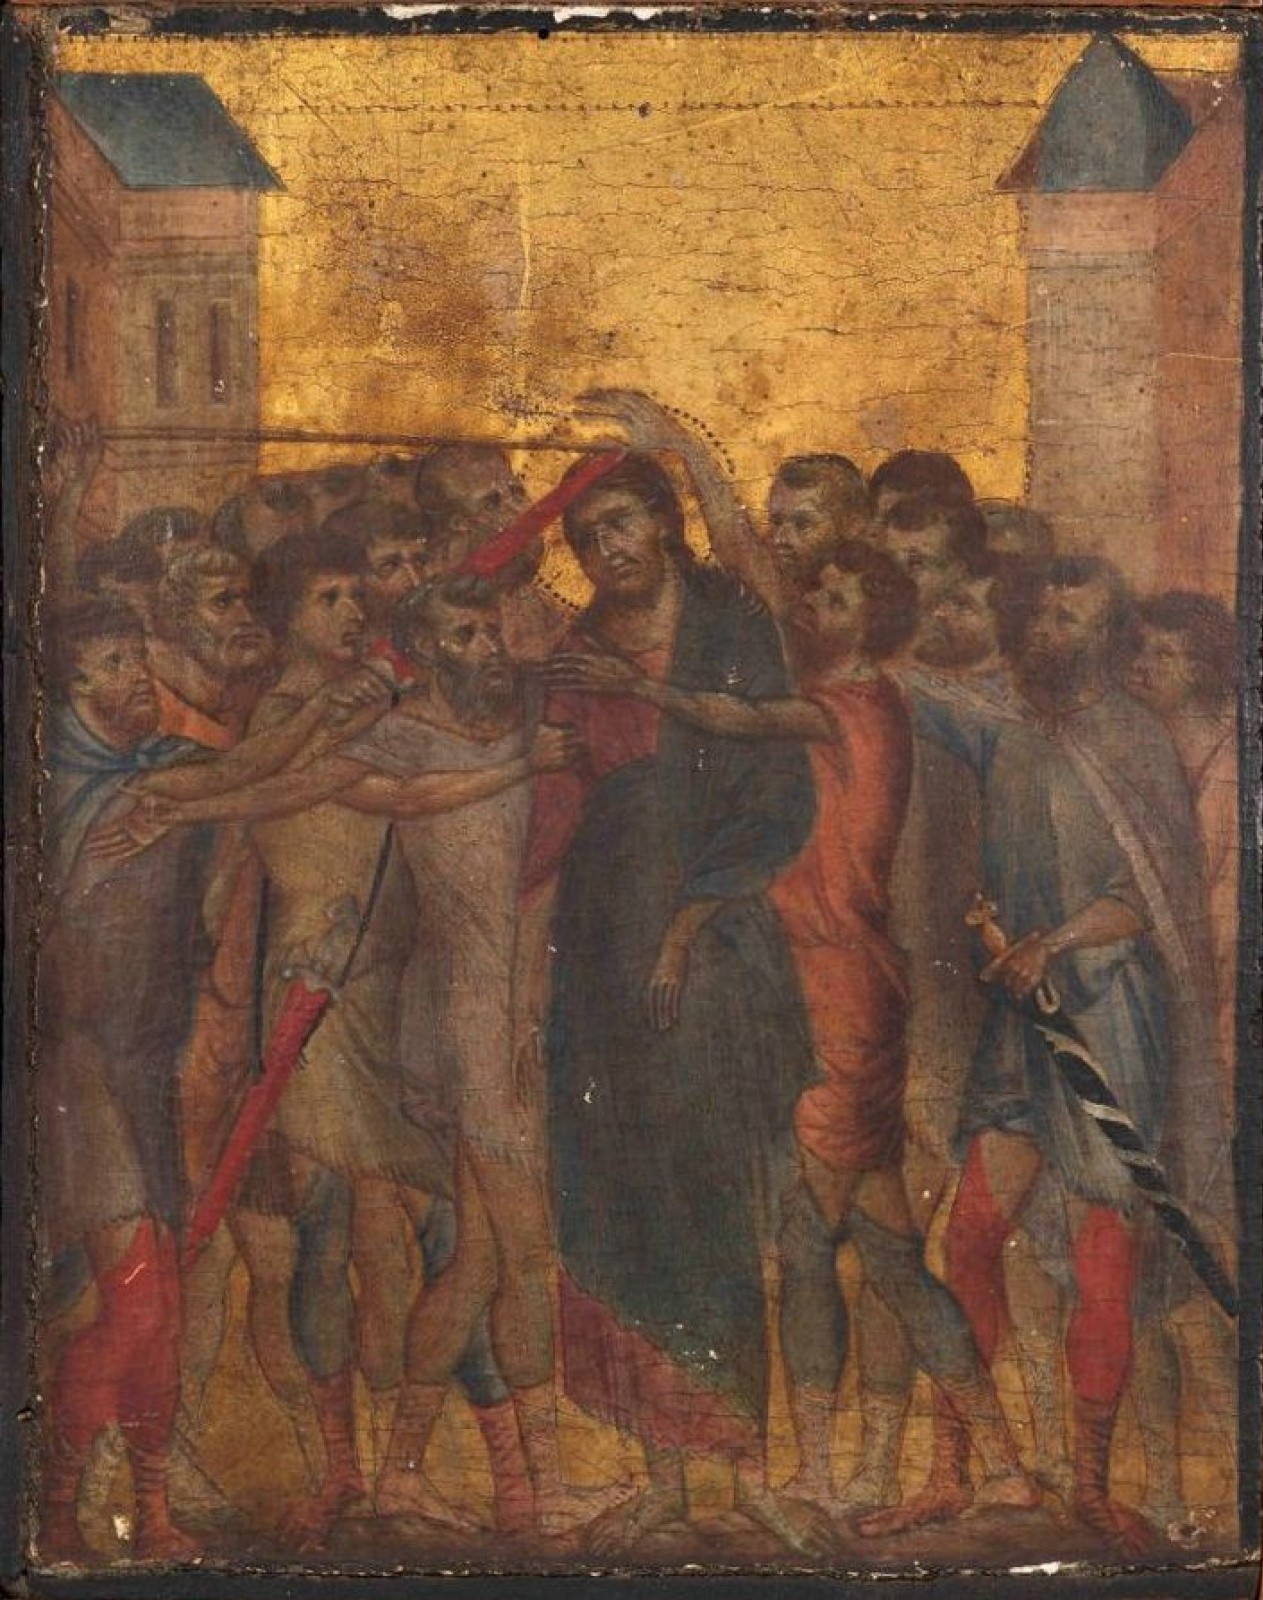 France has banned the removal of the masterpiece by Cimabue, found in the kitchen.